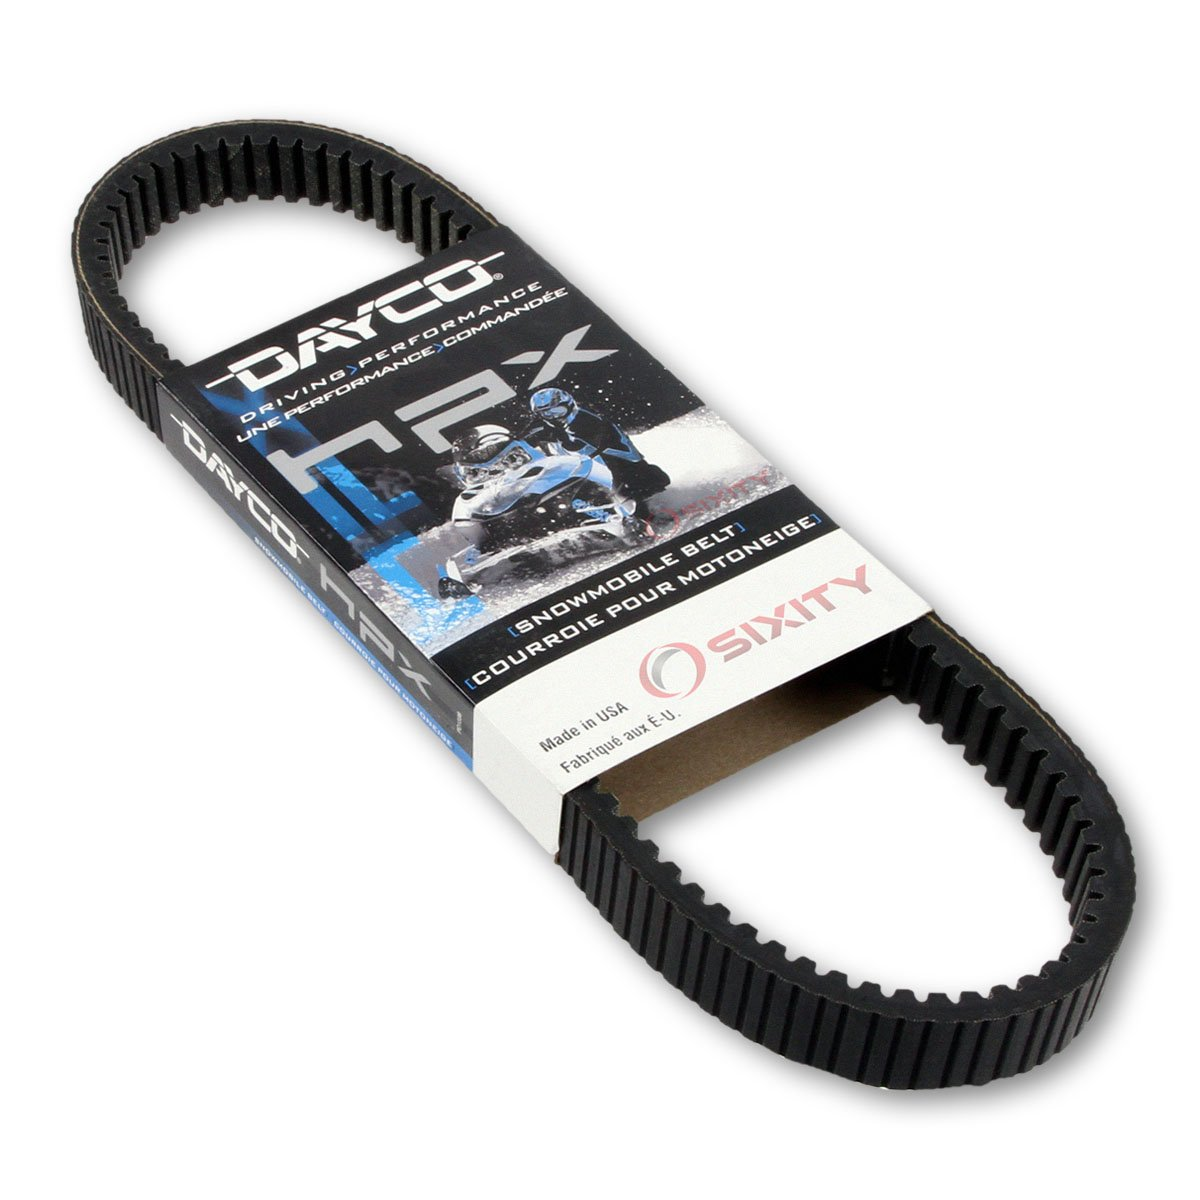 2004-2014 Polaris 600 SwitchBack Drive Belt Dayco HPX Snowmobile OEM Upgrade Replacement Transmission Belts